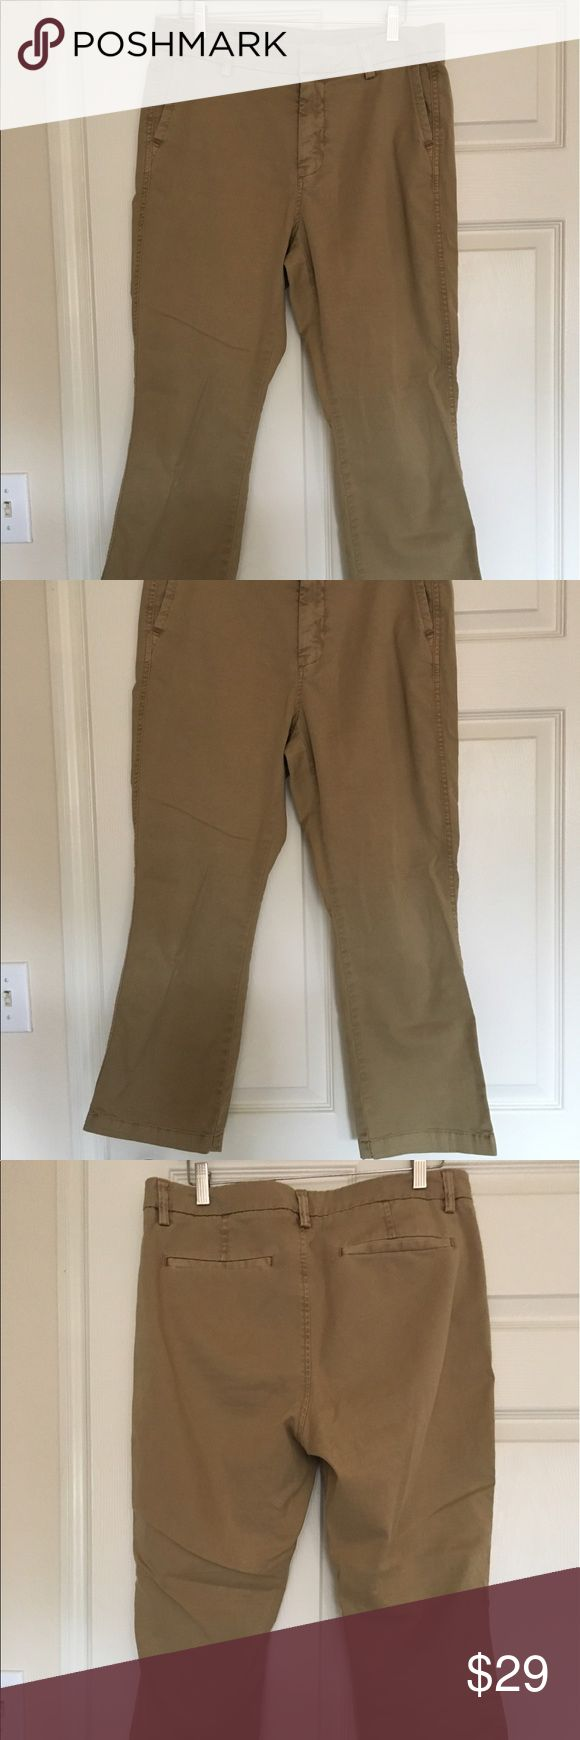 JCrew British Khaki Sammie Pant JCrew item #f4323. From fall 2016 at retail store (not Factory store). These are so comfortable, but don't fit me anymore and I only wore them once. Sits just above hip. Has stretch. Fitted through hip and thigh with cropped, kicked out leg. Machine wash. Cotton/elastane. Garment-dyed. J. Crew Pants Ankle & Cropped